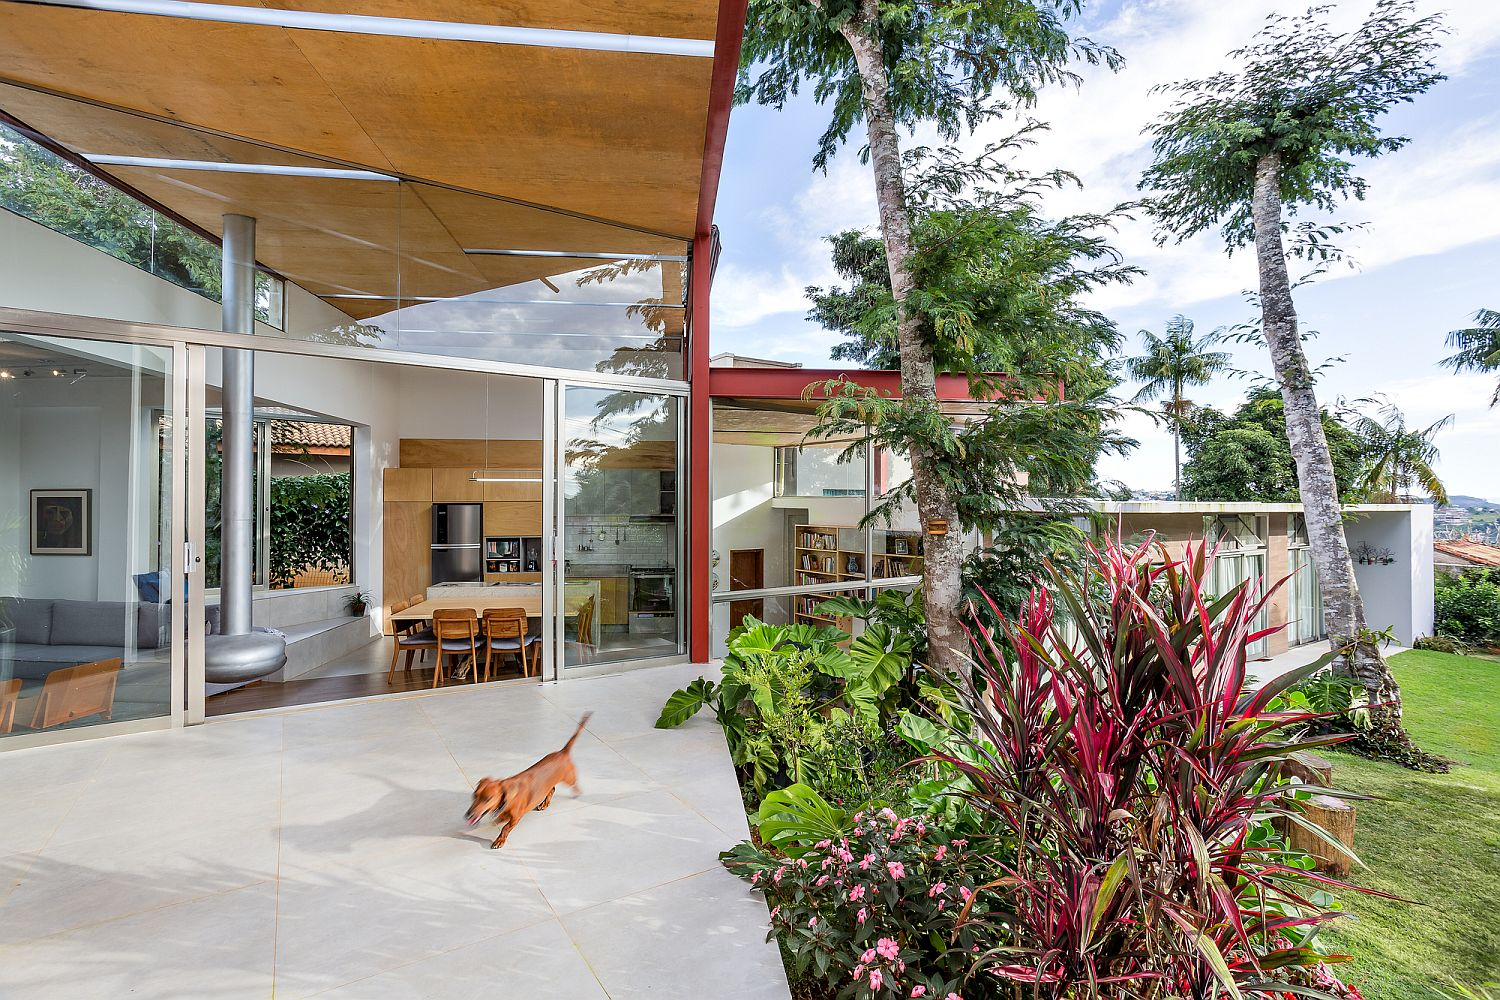 Natural landscape outside feels like an extension of the living area